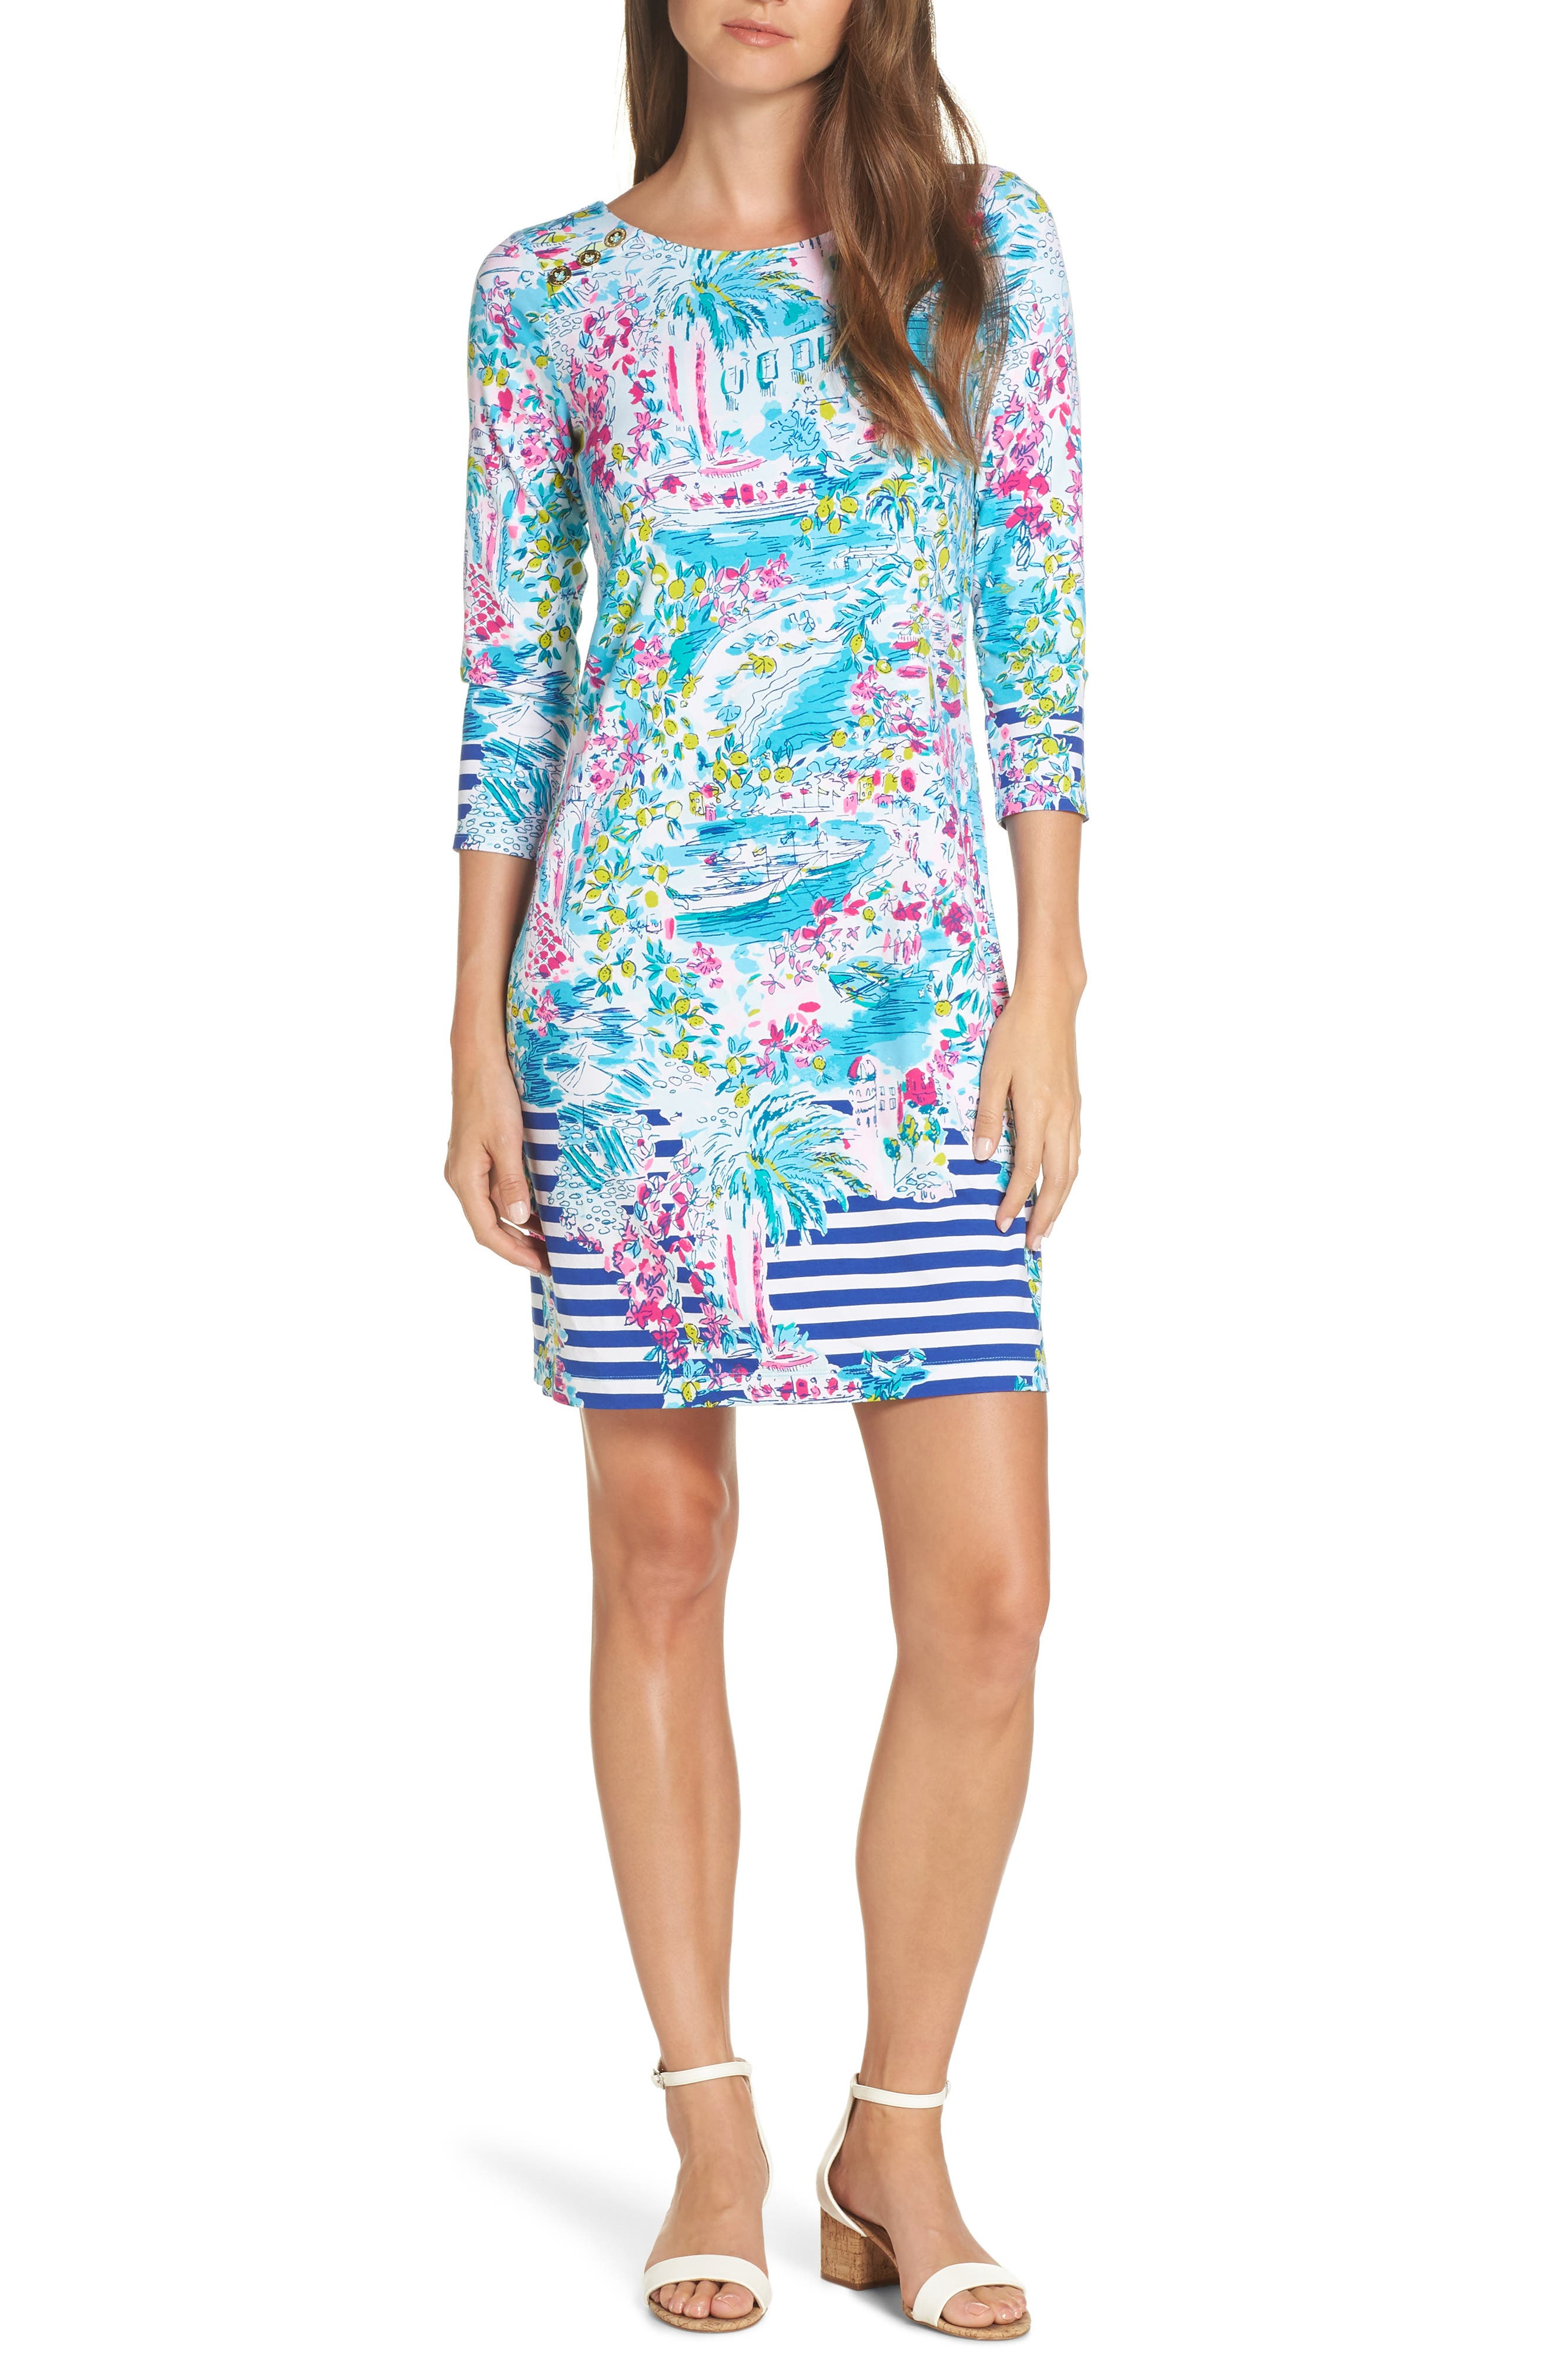 Lilly Pulitzer Pearson Upf 50+ Shift Dress, Blue